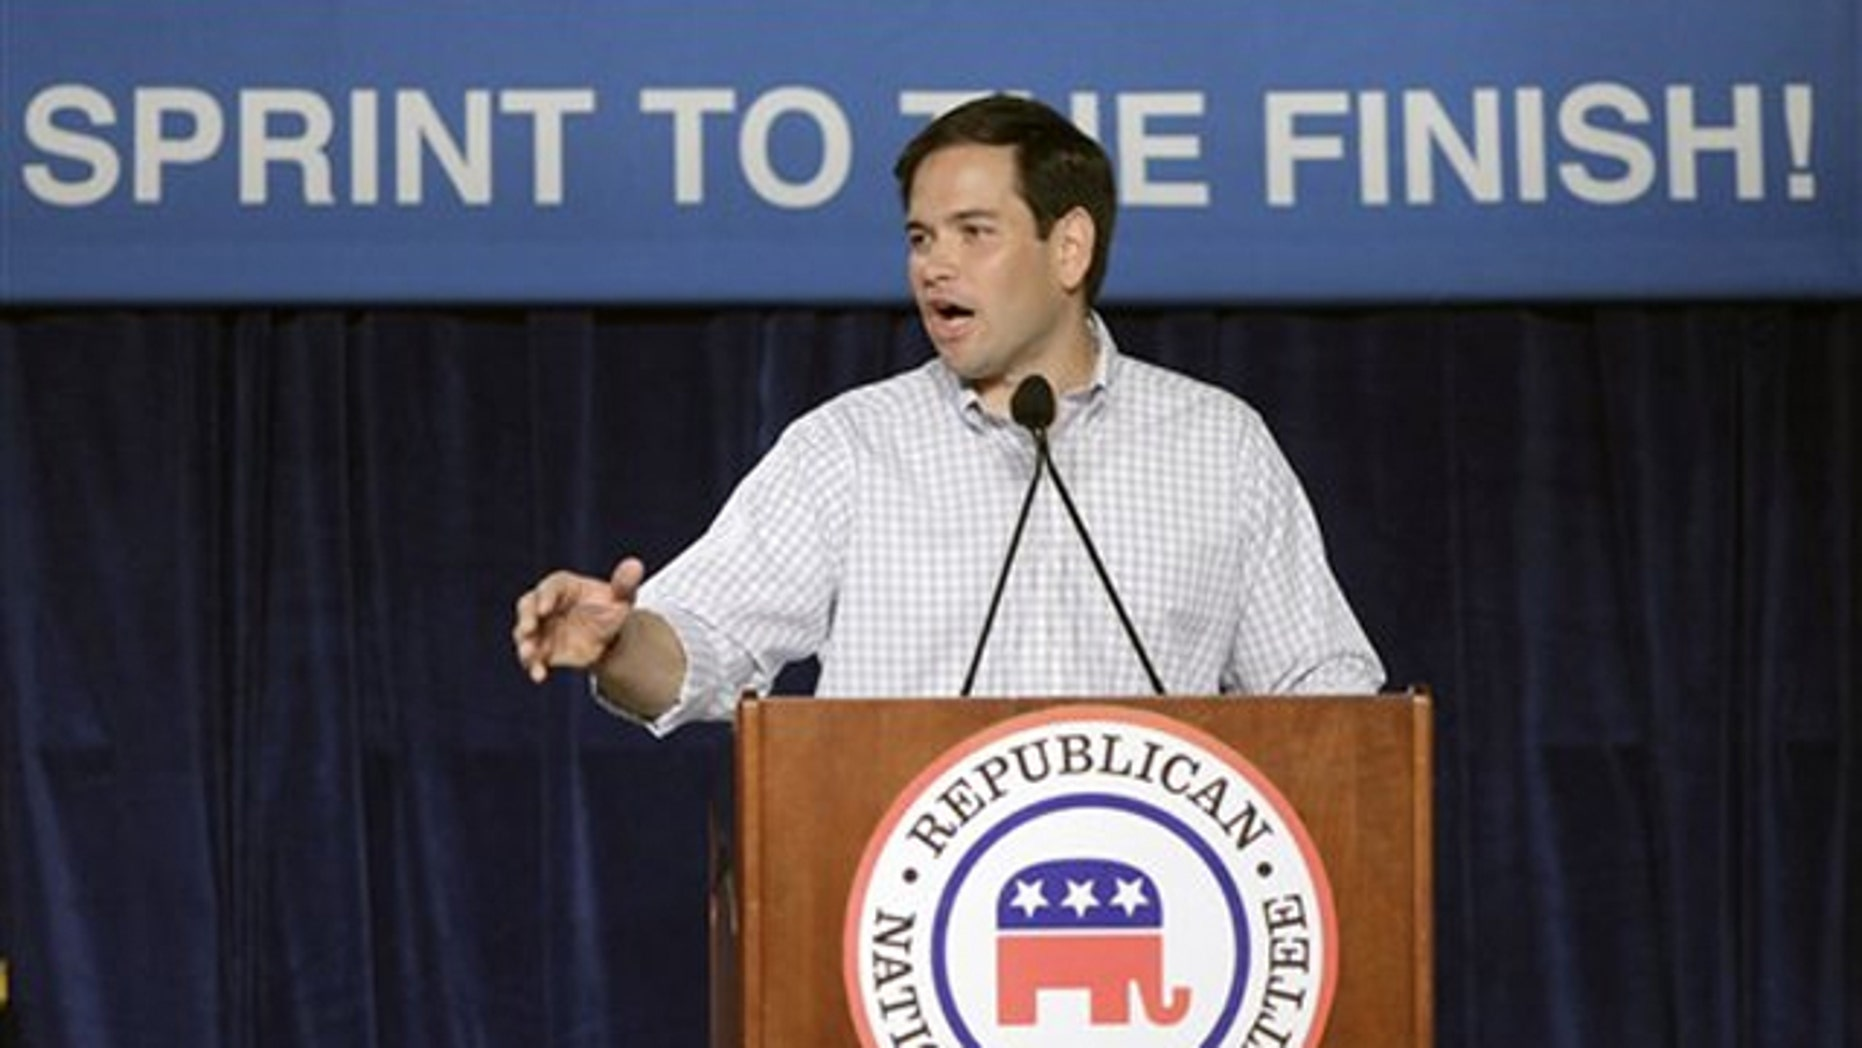 In this file photo, then-Senate candidate Marco Rubio speaks to supporters during a Republican National Committee rally in Orlando Oct. 23, 2010.